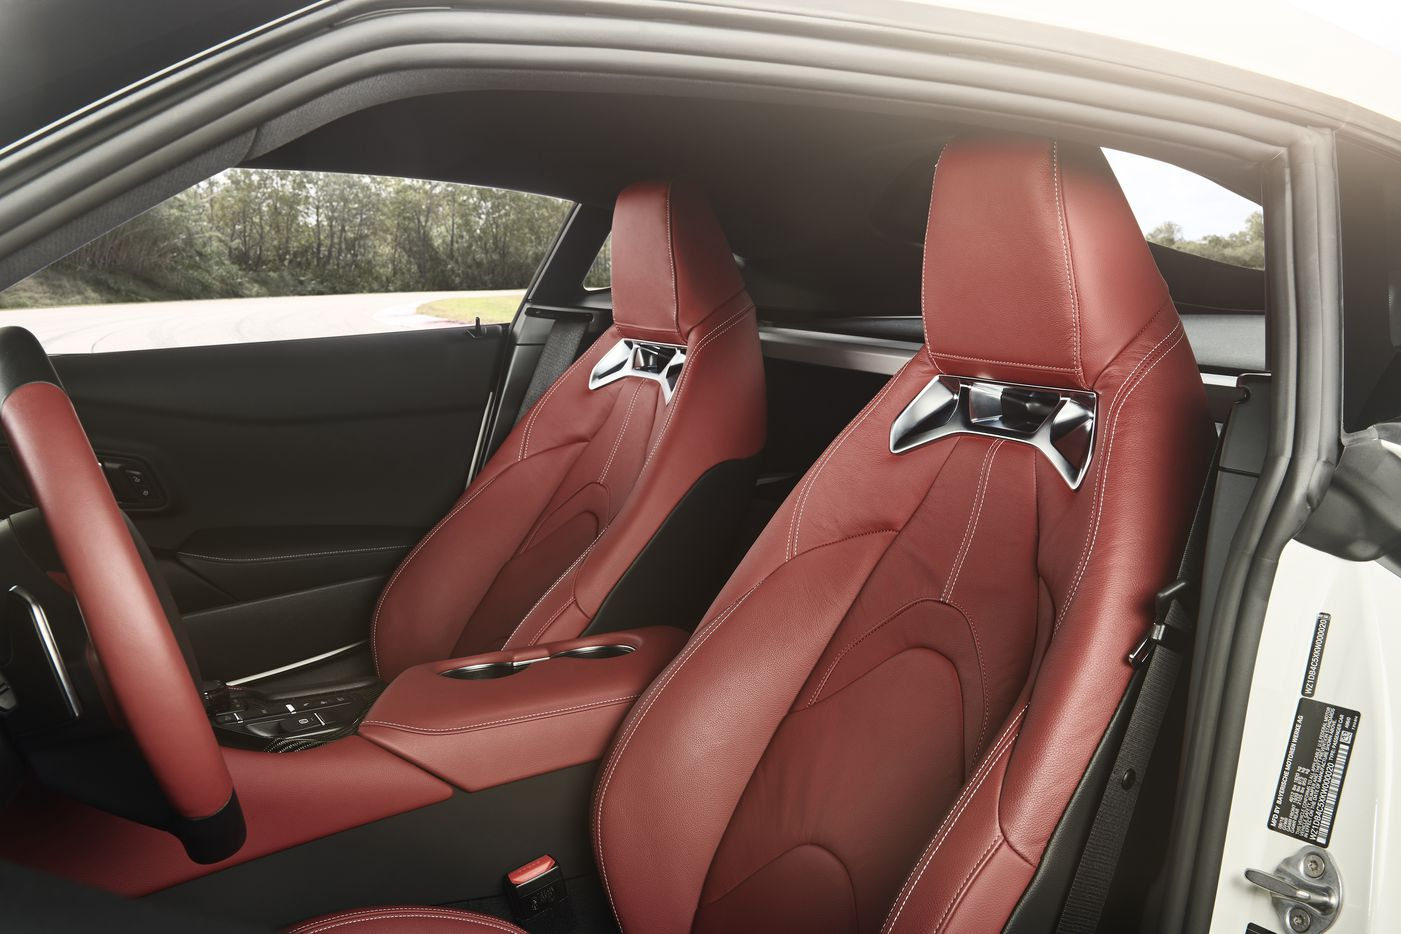 Each of the racing-inspired seats will be wrapped in red leather, with red leather steering wheel grips, and a red center console with carbon-fiber accents.